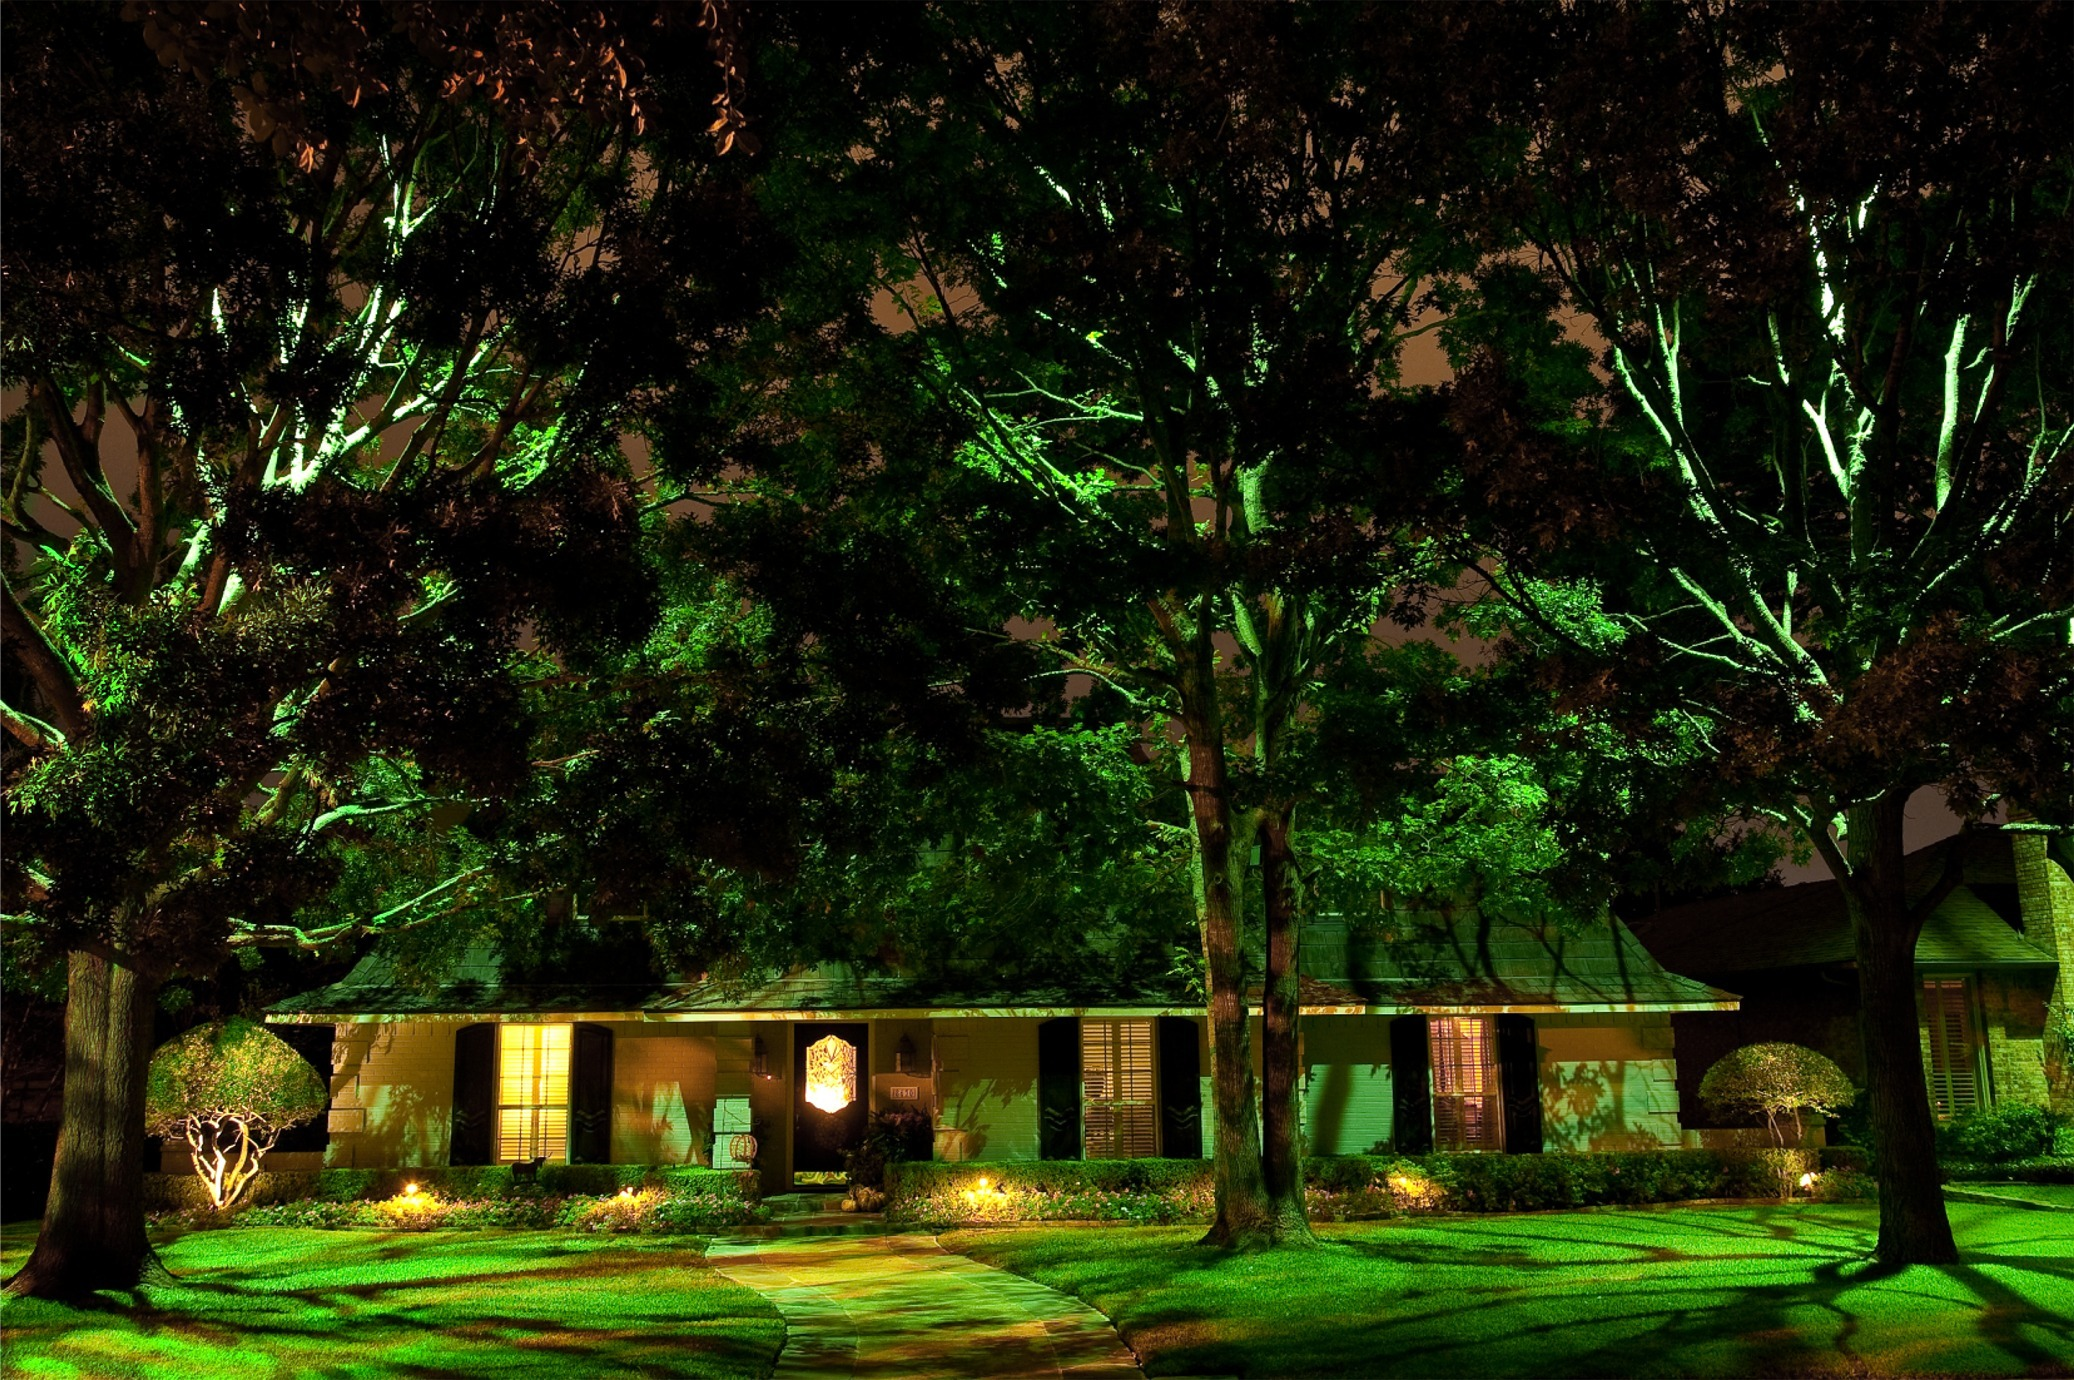 Create moonlighting techniques by placing a large fixture with a full glare guard high up inside a tree, and angled downwards. This effect looks like moonlight shining down through the branches. It causes attractive shadow patterns on the ground to appear, plus it provides a very natural and beautiful lighting effect.